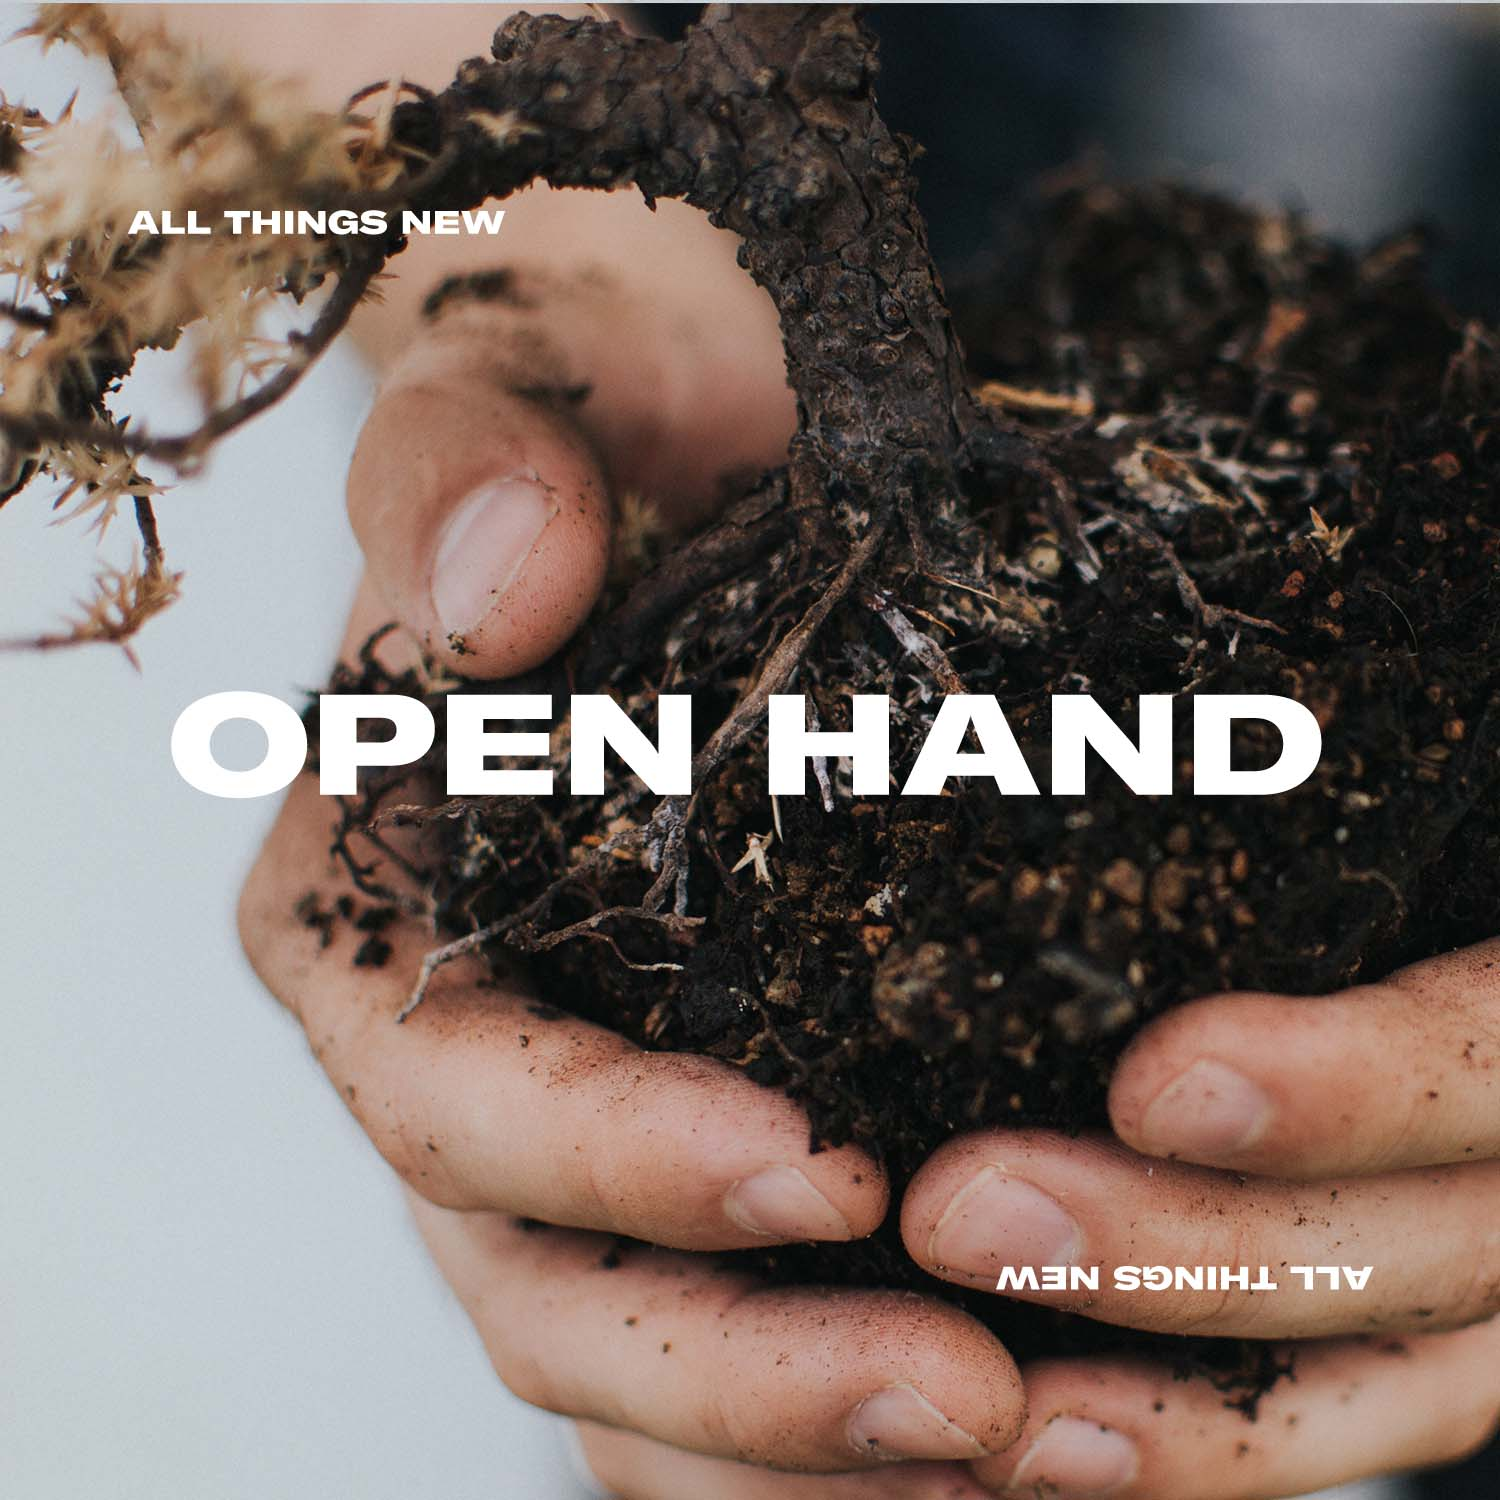 Open Hand: Blogs   Catch up on all the 'Open Hand' blog posts  here